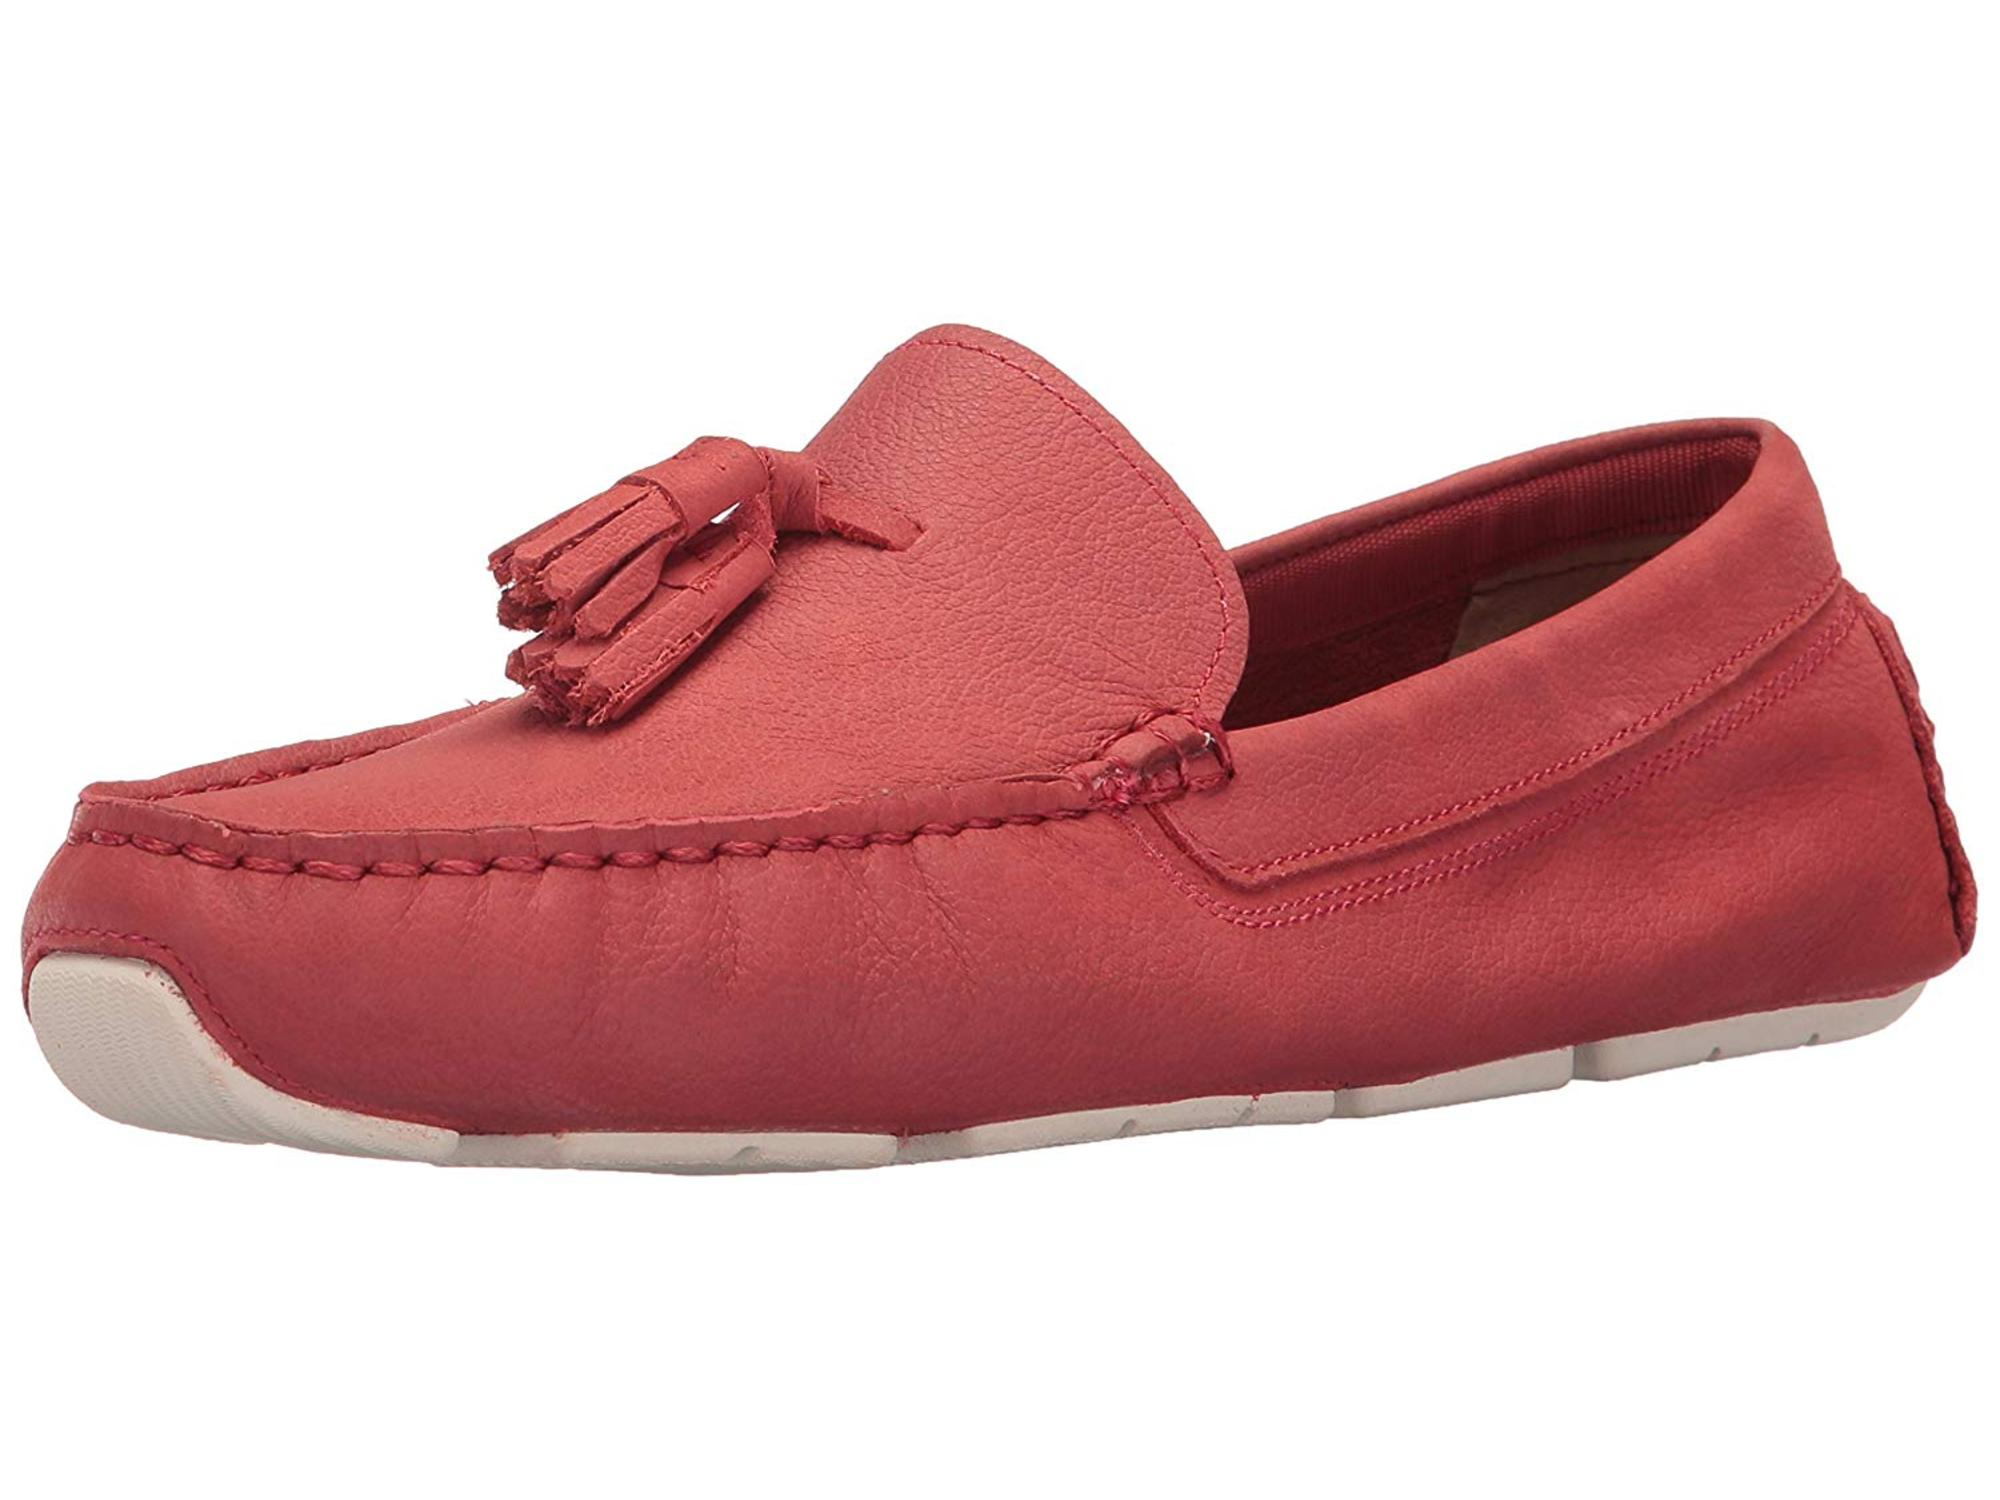 39996ea626c Cole Haan Mens RODEO TASSEL DRIVER Leather Closed Toe